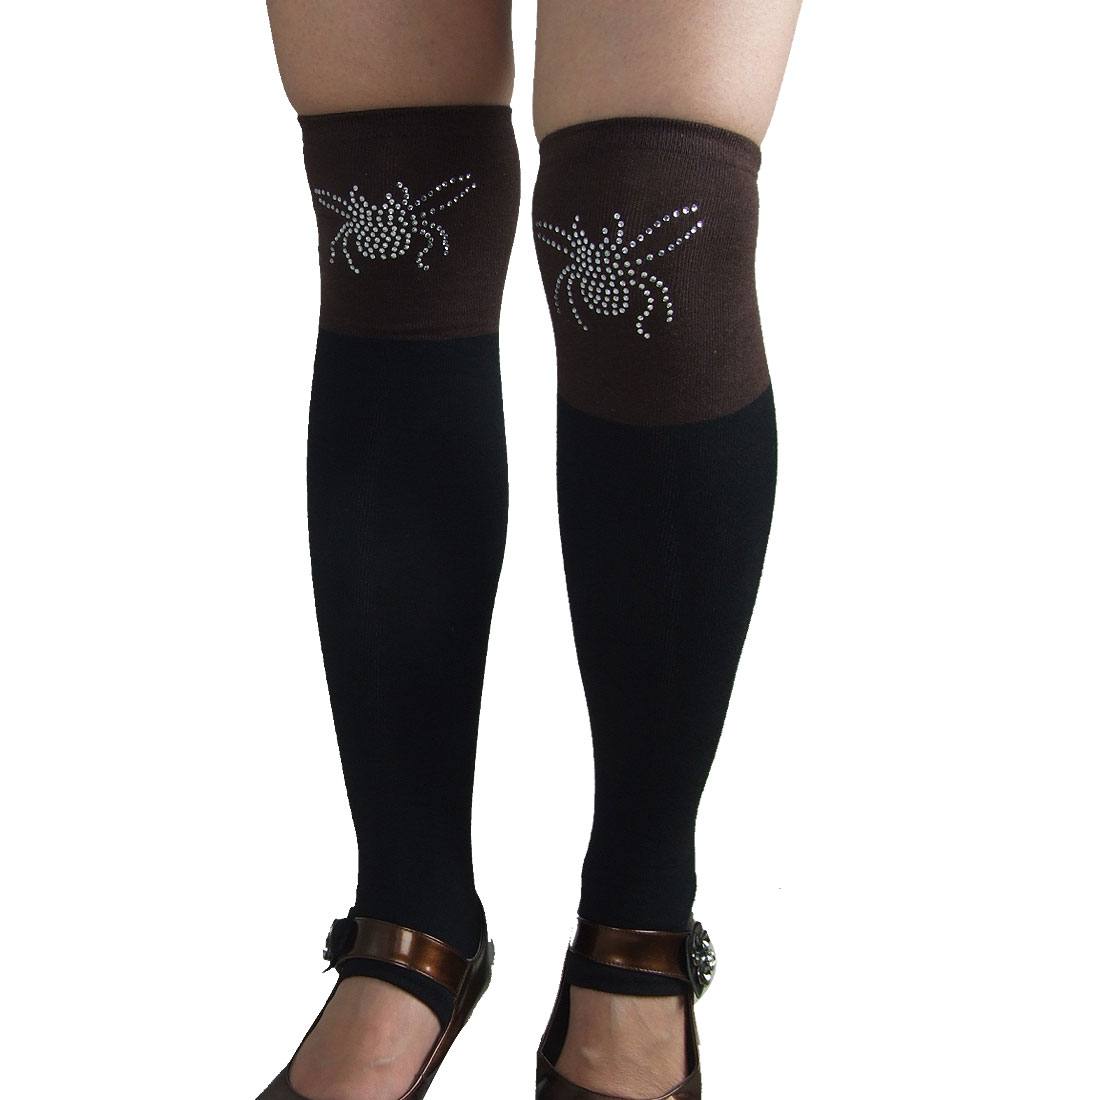 Coffee Black Elastic Heel Leg Warmer Toeless Stockings